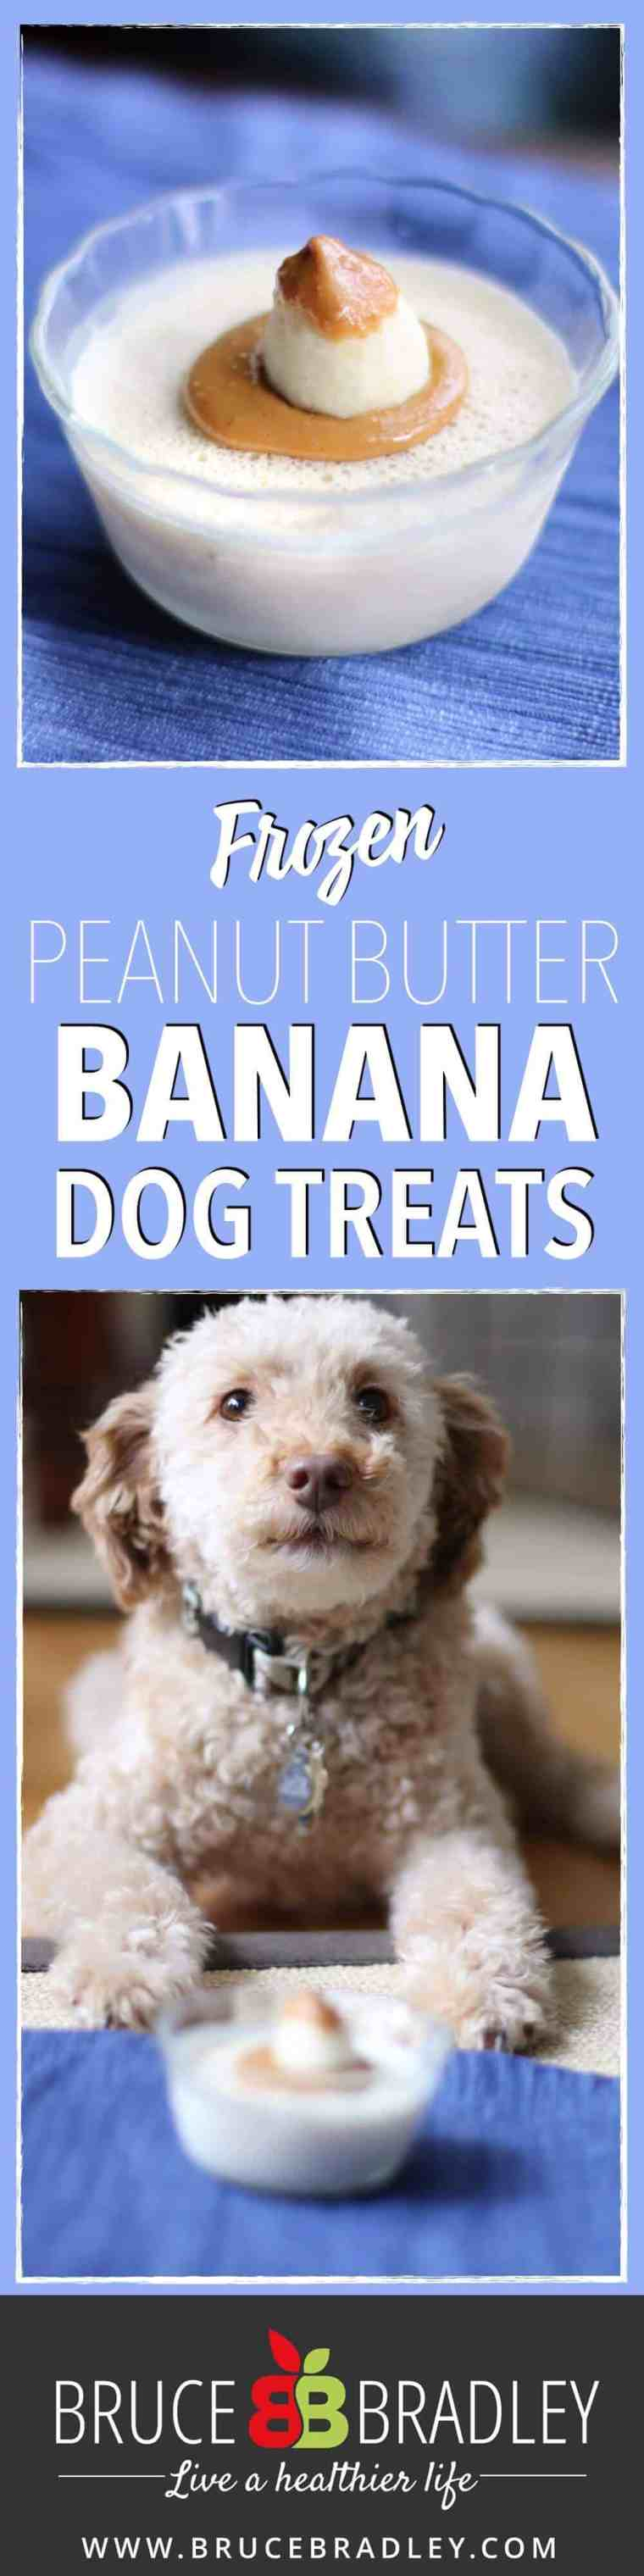 Our special three ingredient, REAL food frozen dog treats are super easy to make, and oh boy does our dog love them!